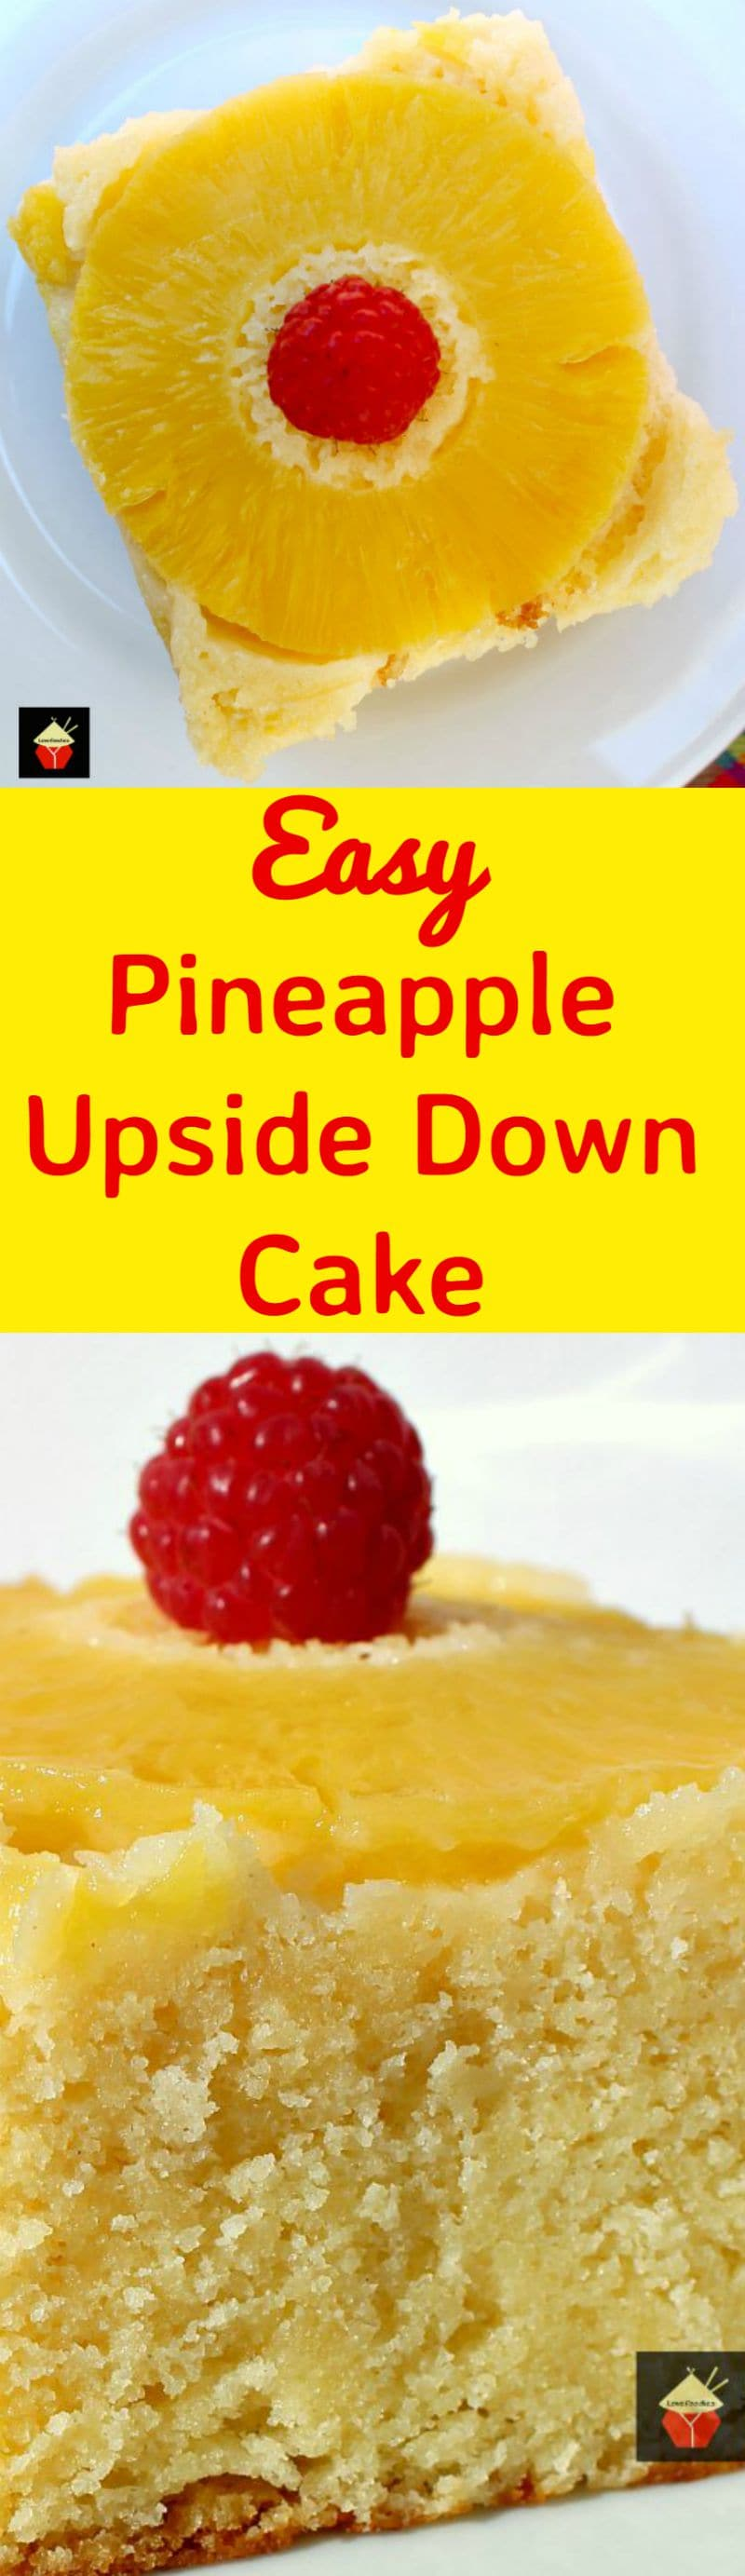 Homemade Pineapple Upside Down Cake Recipe